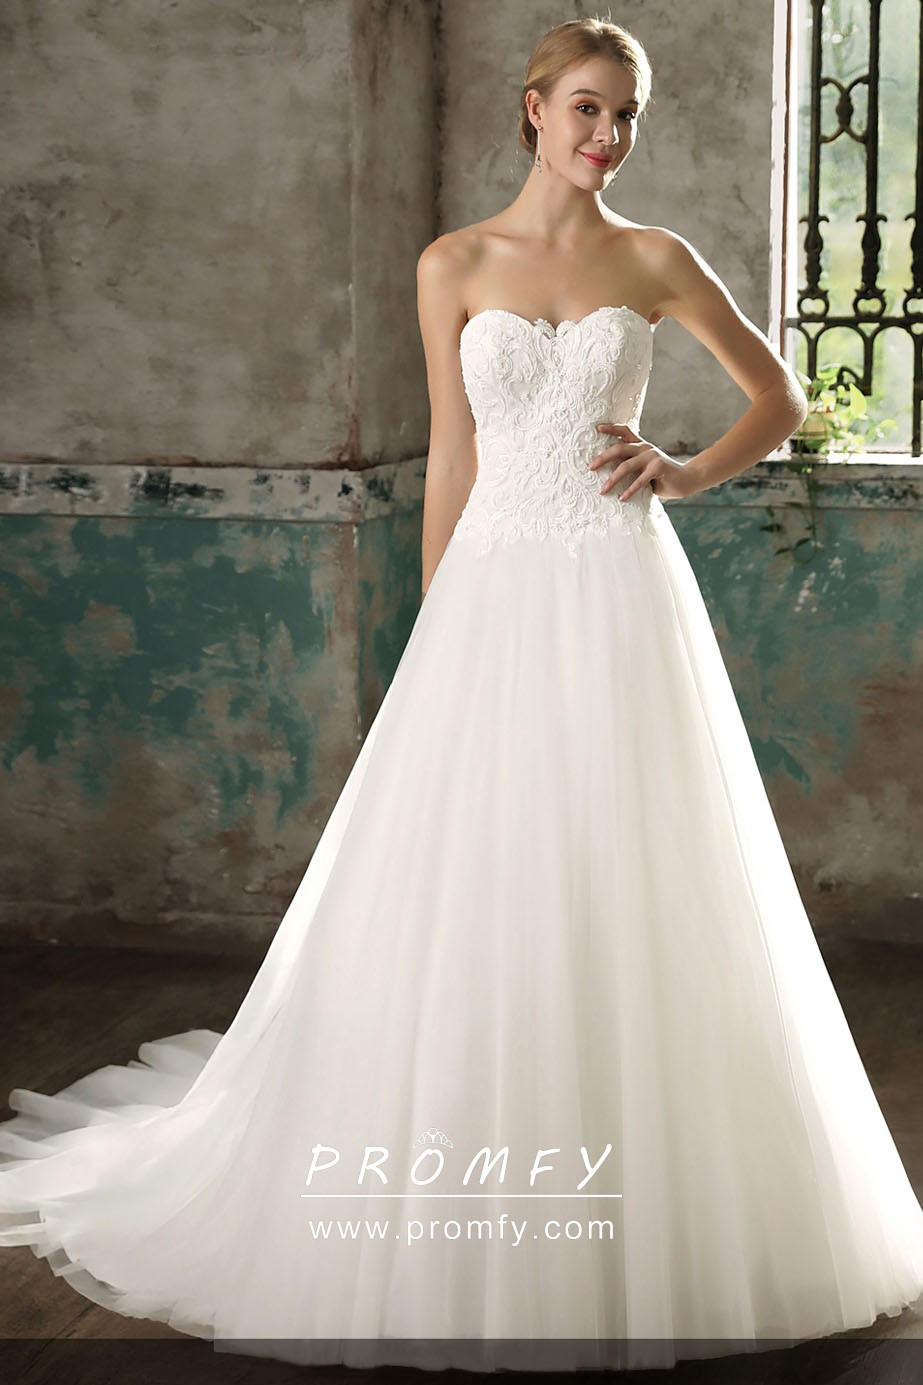 Simple Lace Tulle Strapless A Line Wedding Dress Promfy